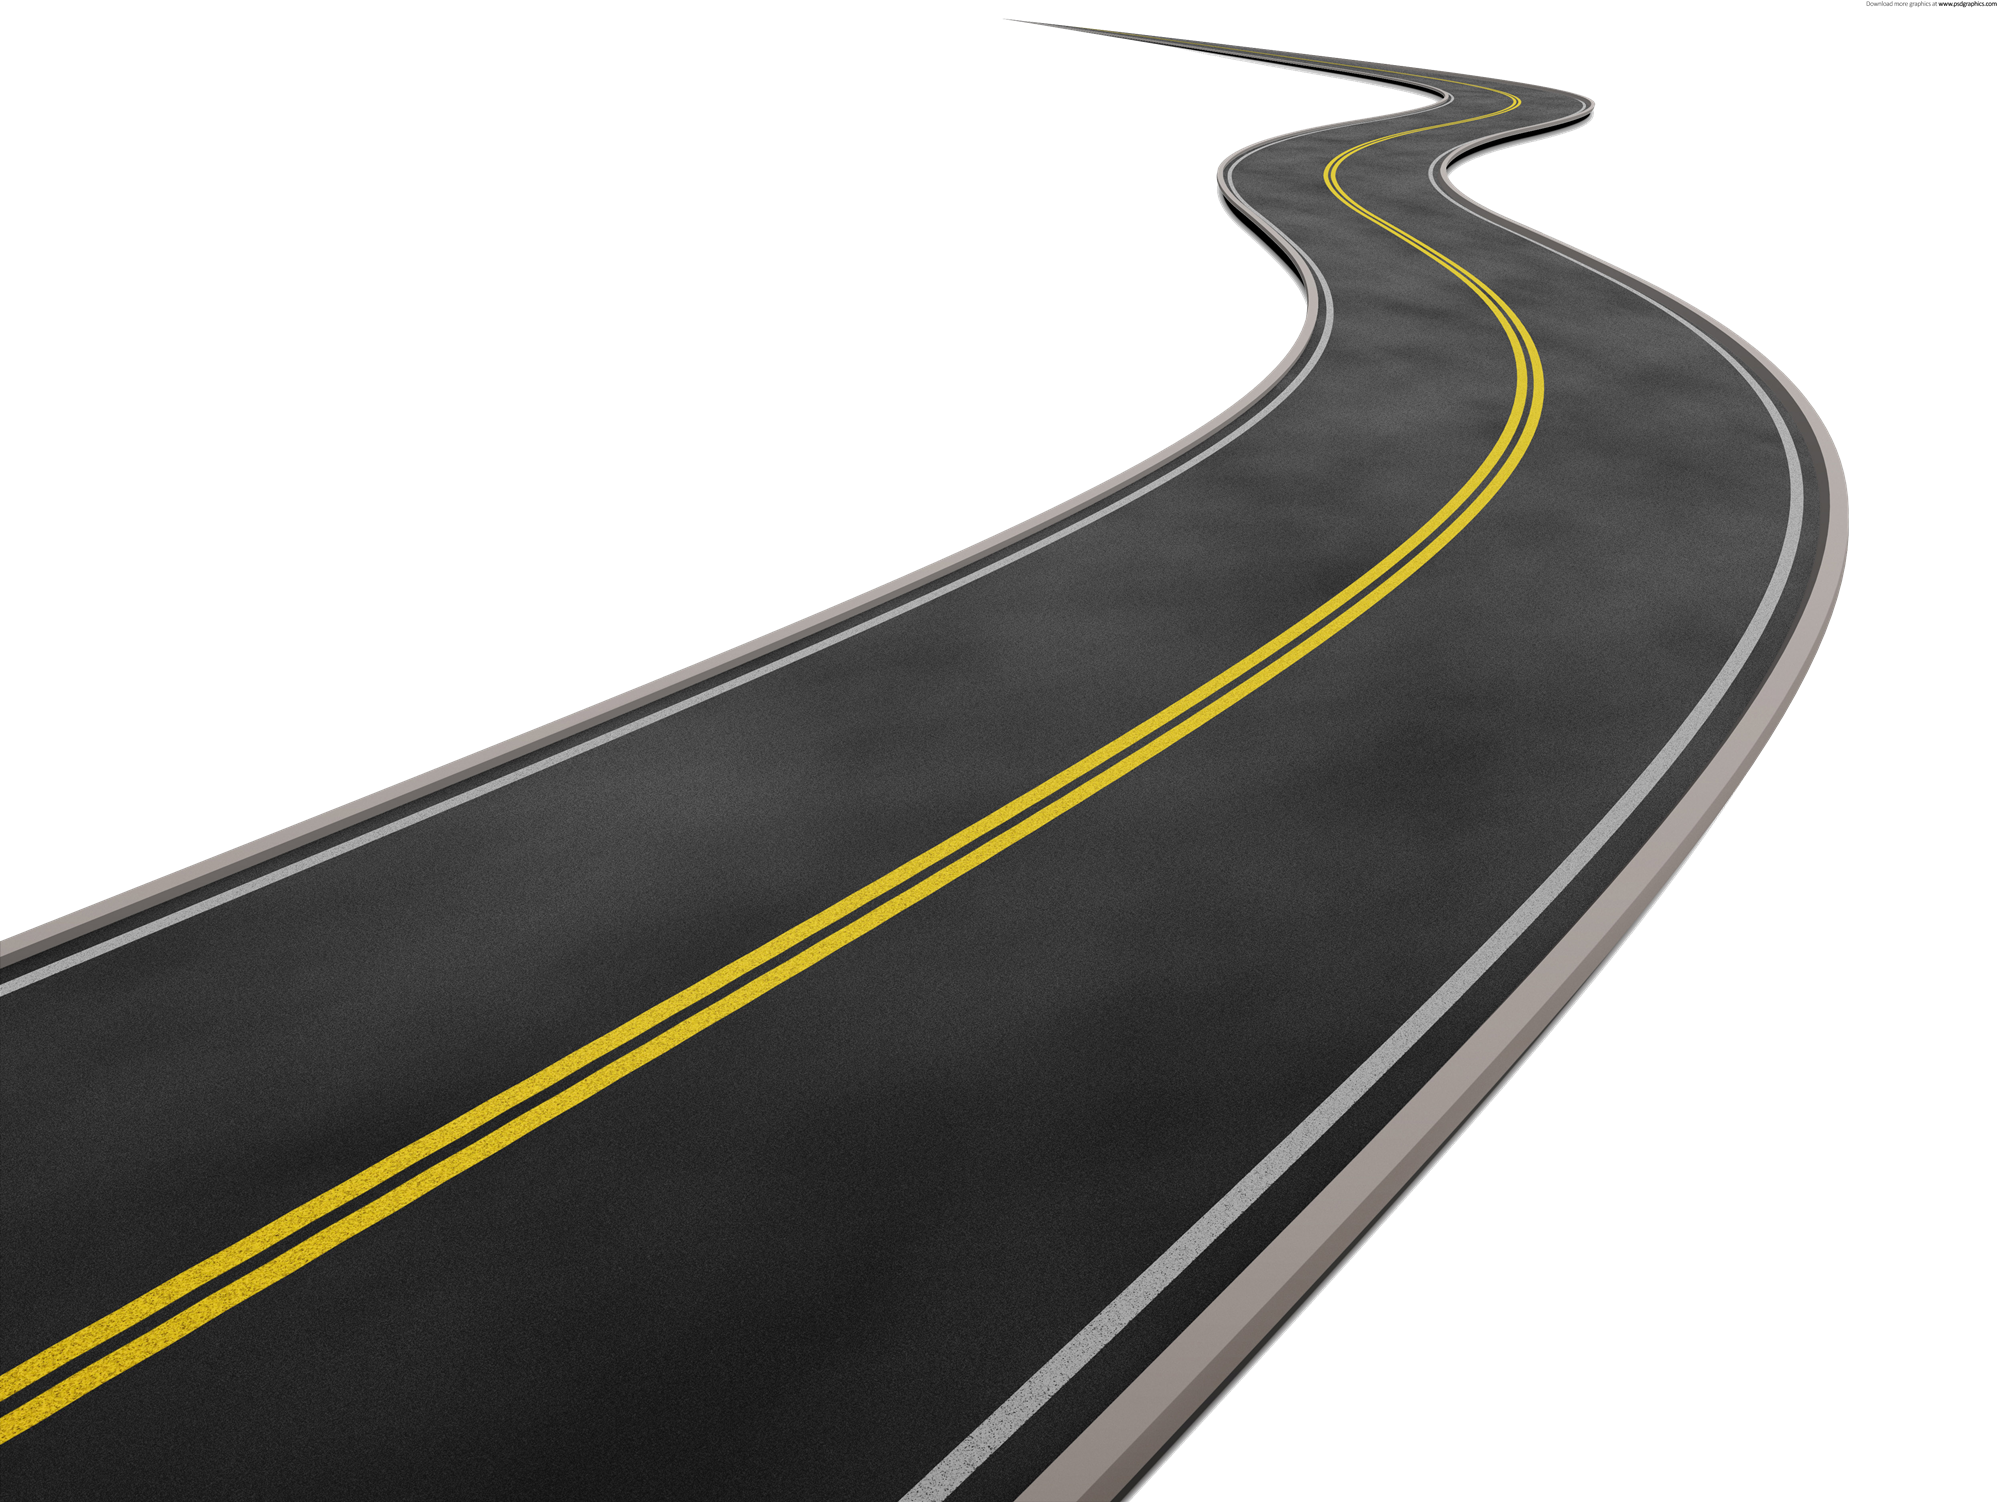 Clipart road transparent background.  collection of high